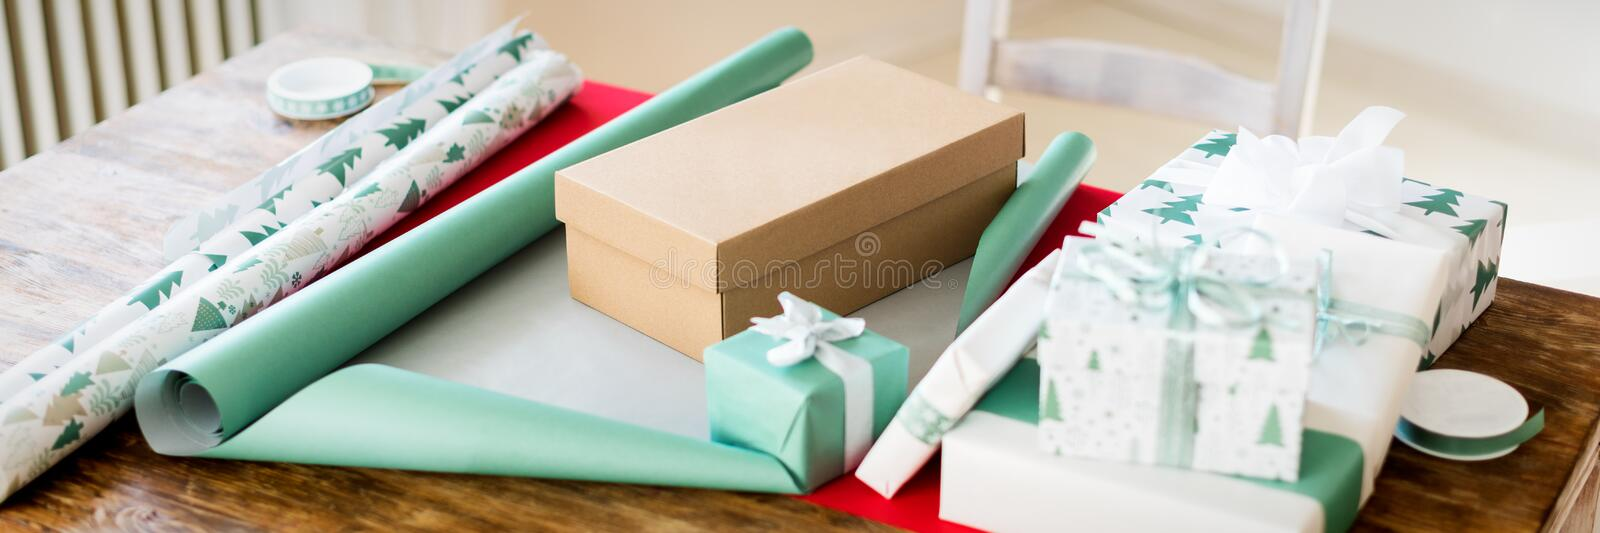 DIY Gift Wrapping. Beautiful nordic christmas gifts on wooden table. Christmas wrapping station banner. royalty free stock photography